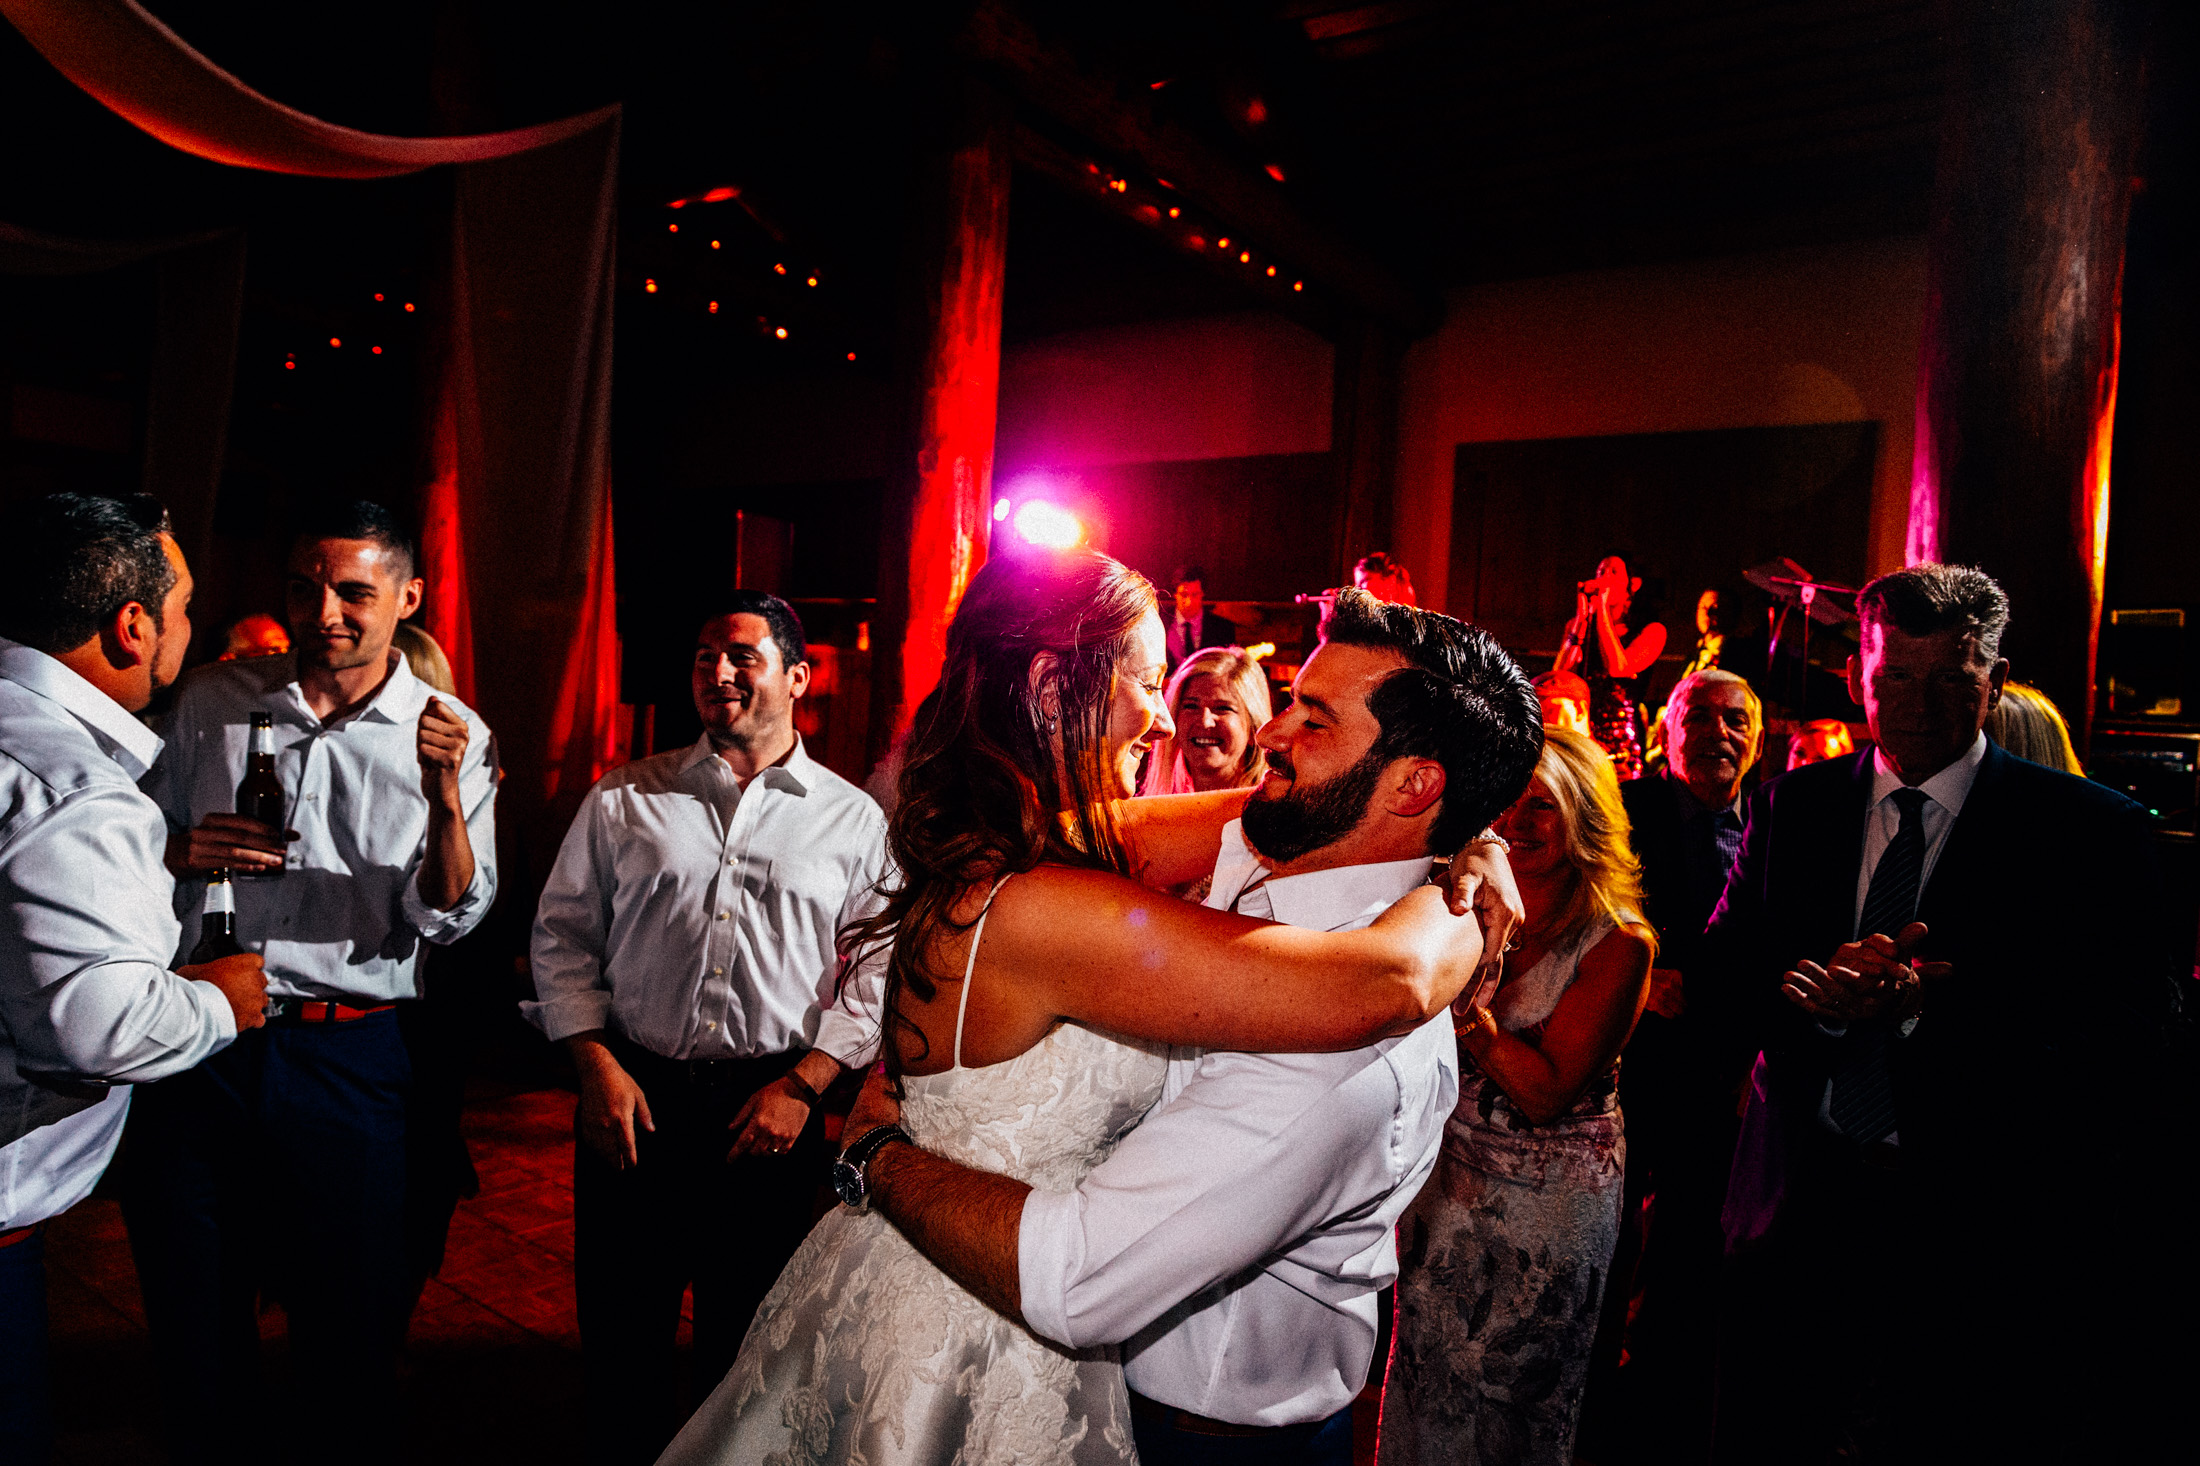 Bride embraces groom on dance floor during wedding reception inside Timber Ridge Lodge.